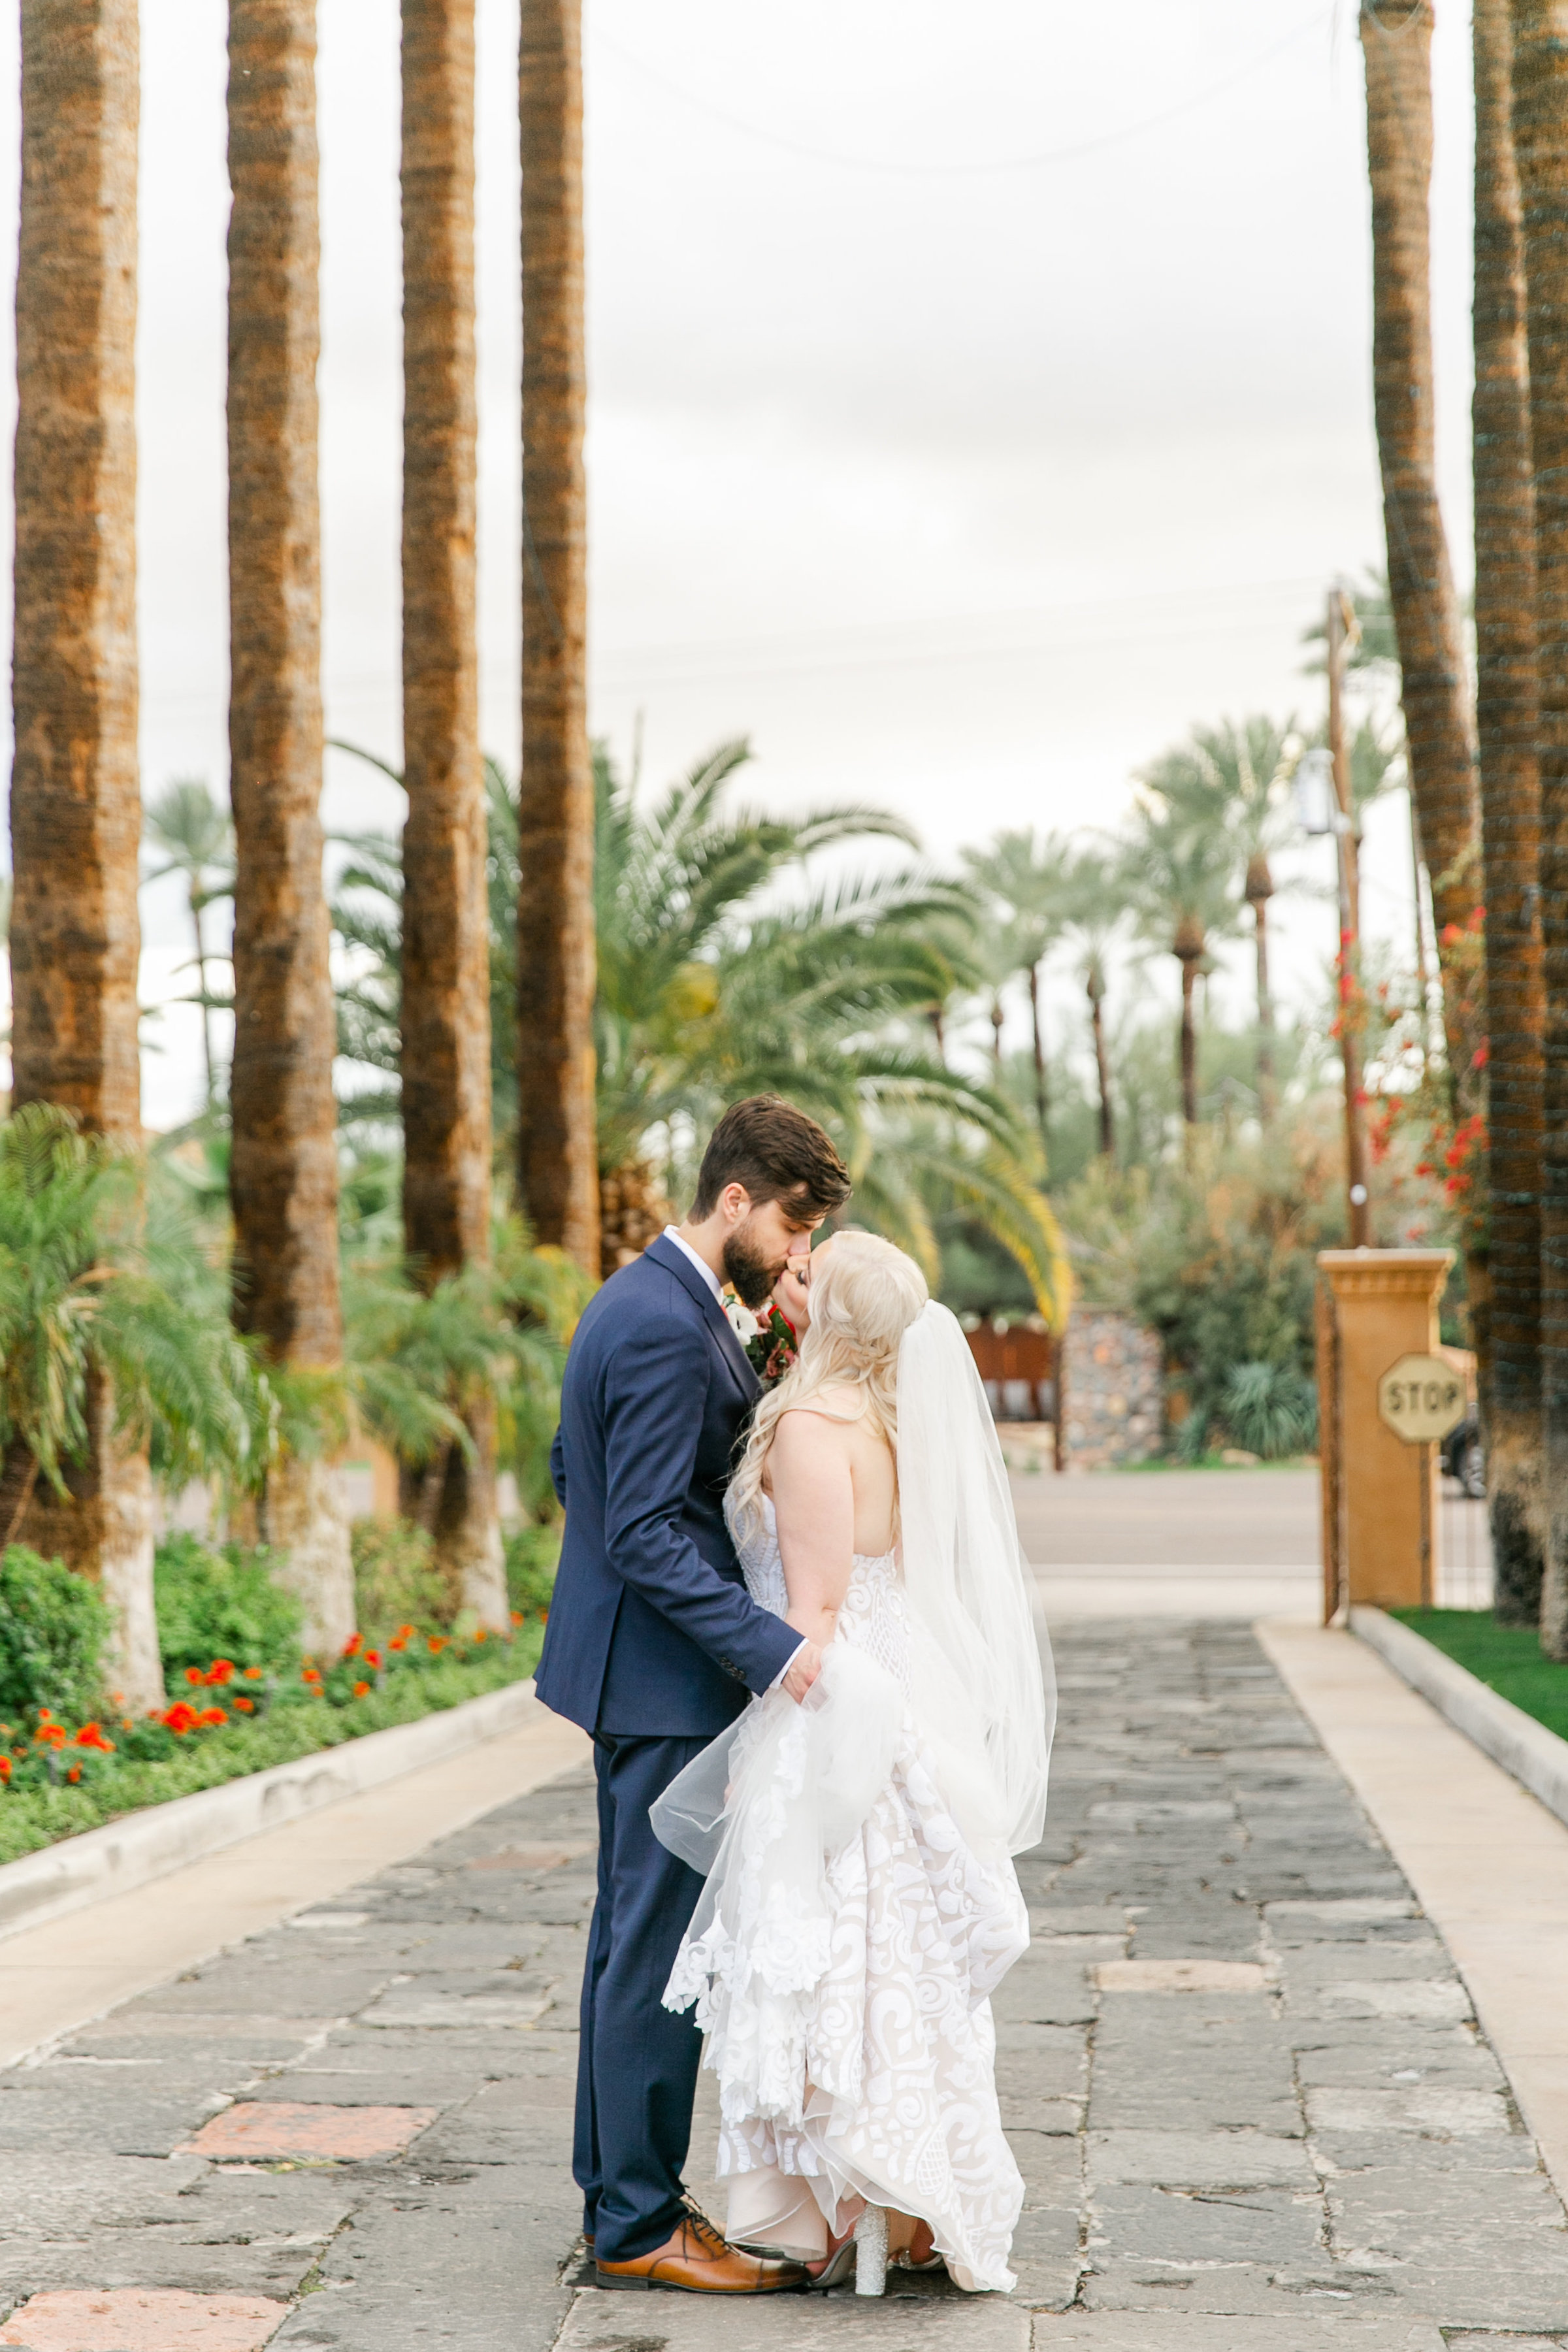 Karlie Colleen Photography - The Royal Palms Wedding - Some Like It Classic - Alex & Sam-577